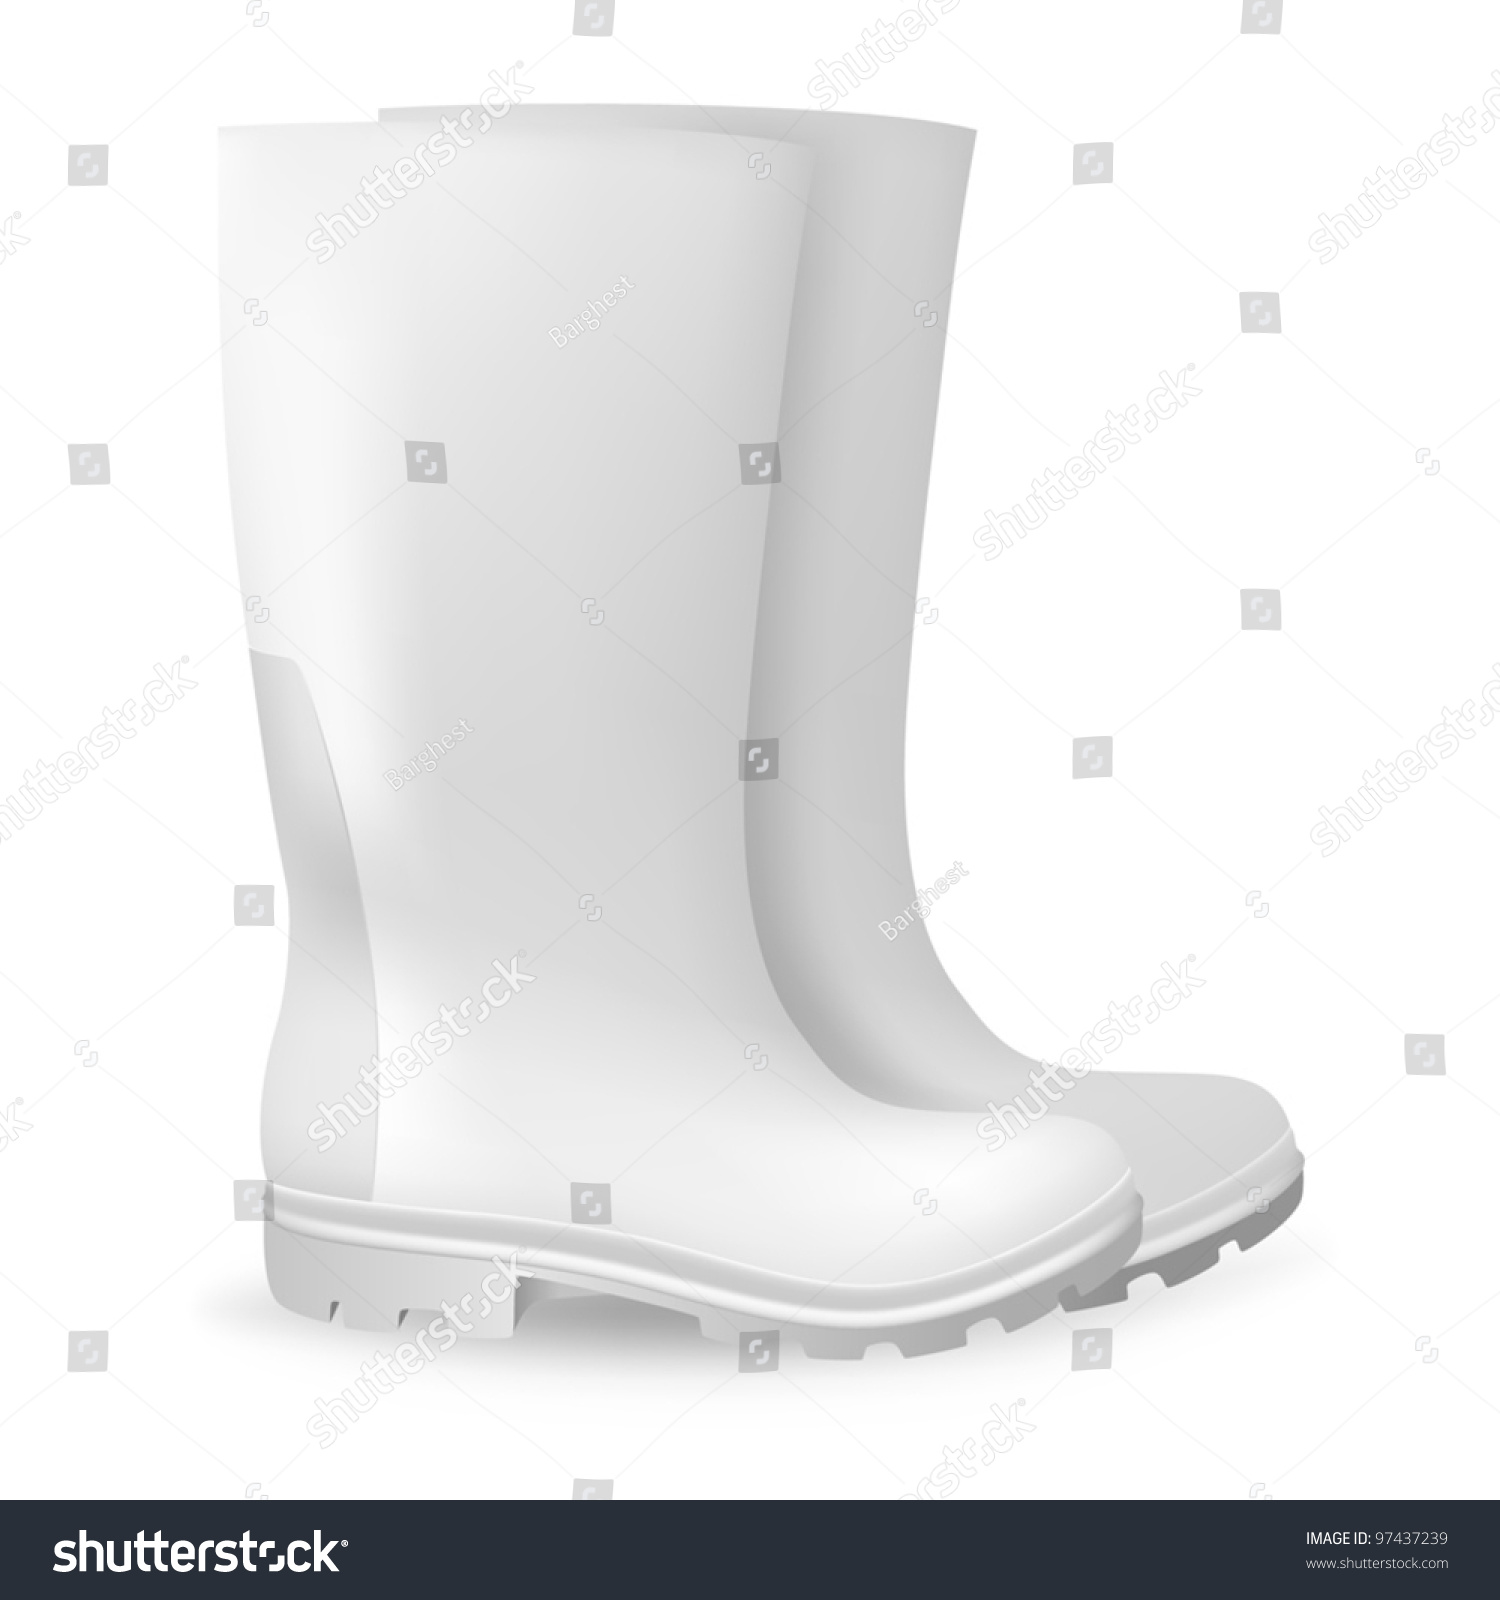 White Blank Safety Rubber Boots Template Stock Vector Royalty Free